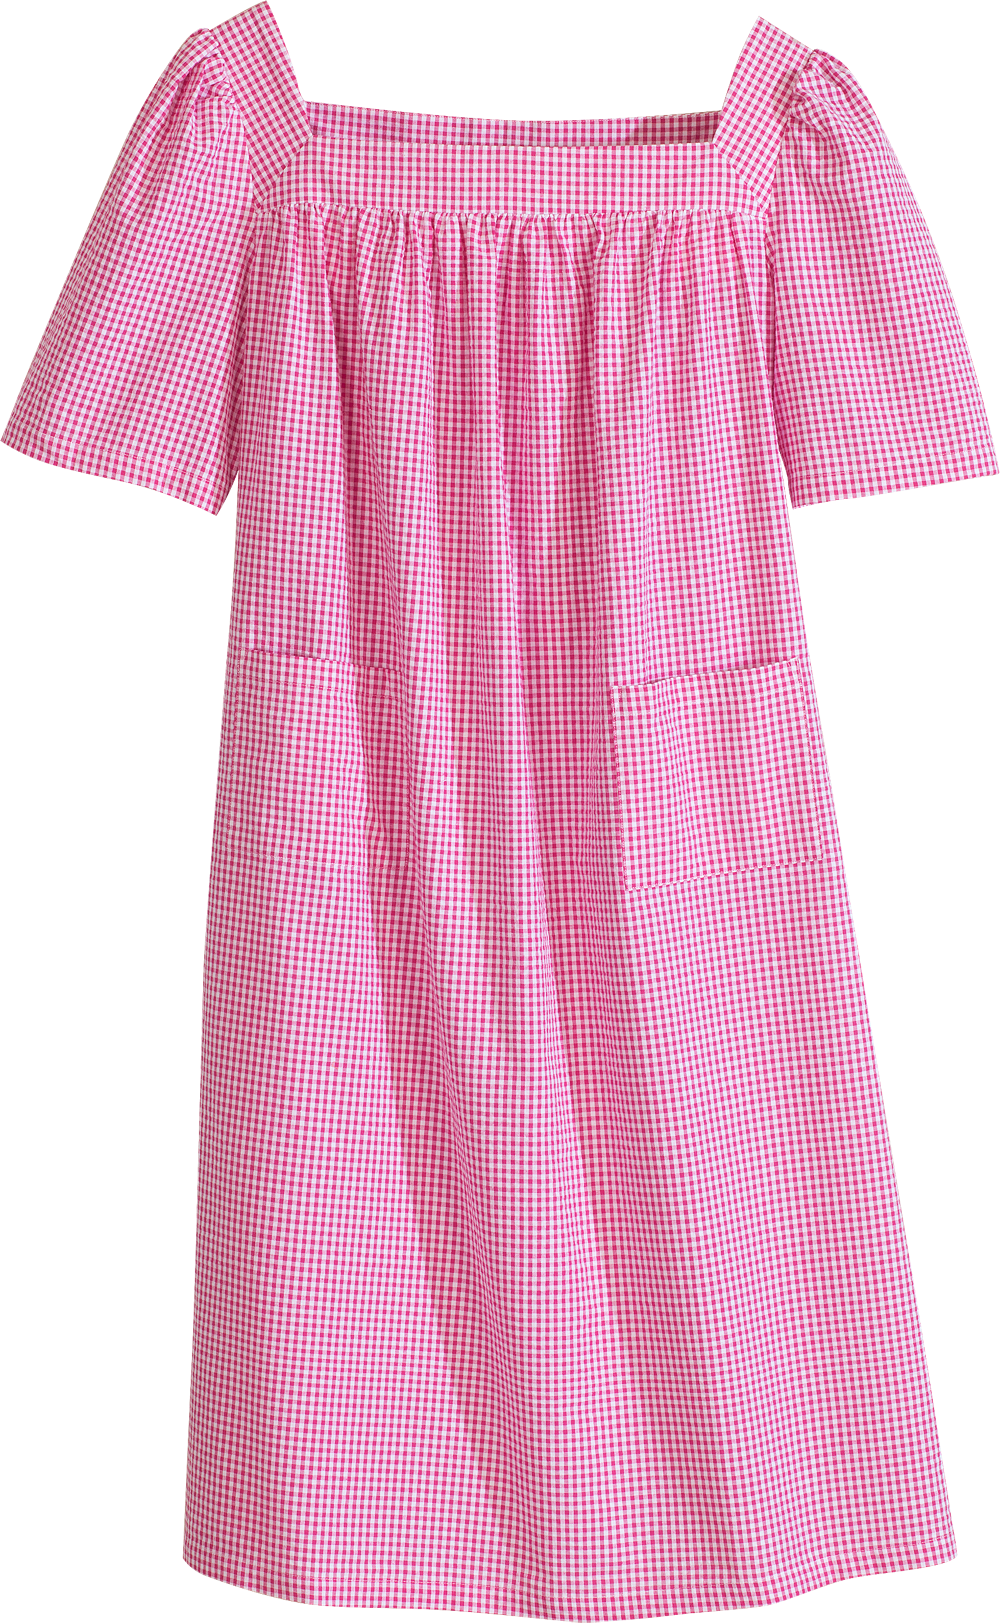 Cotton Patio Dress In Lightweight Seersucker Summery Cotton Dress